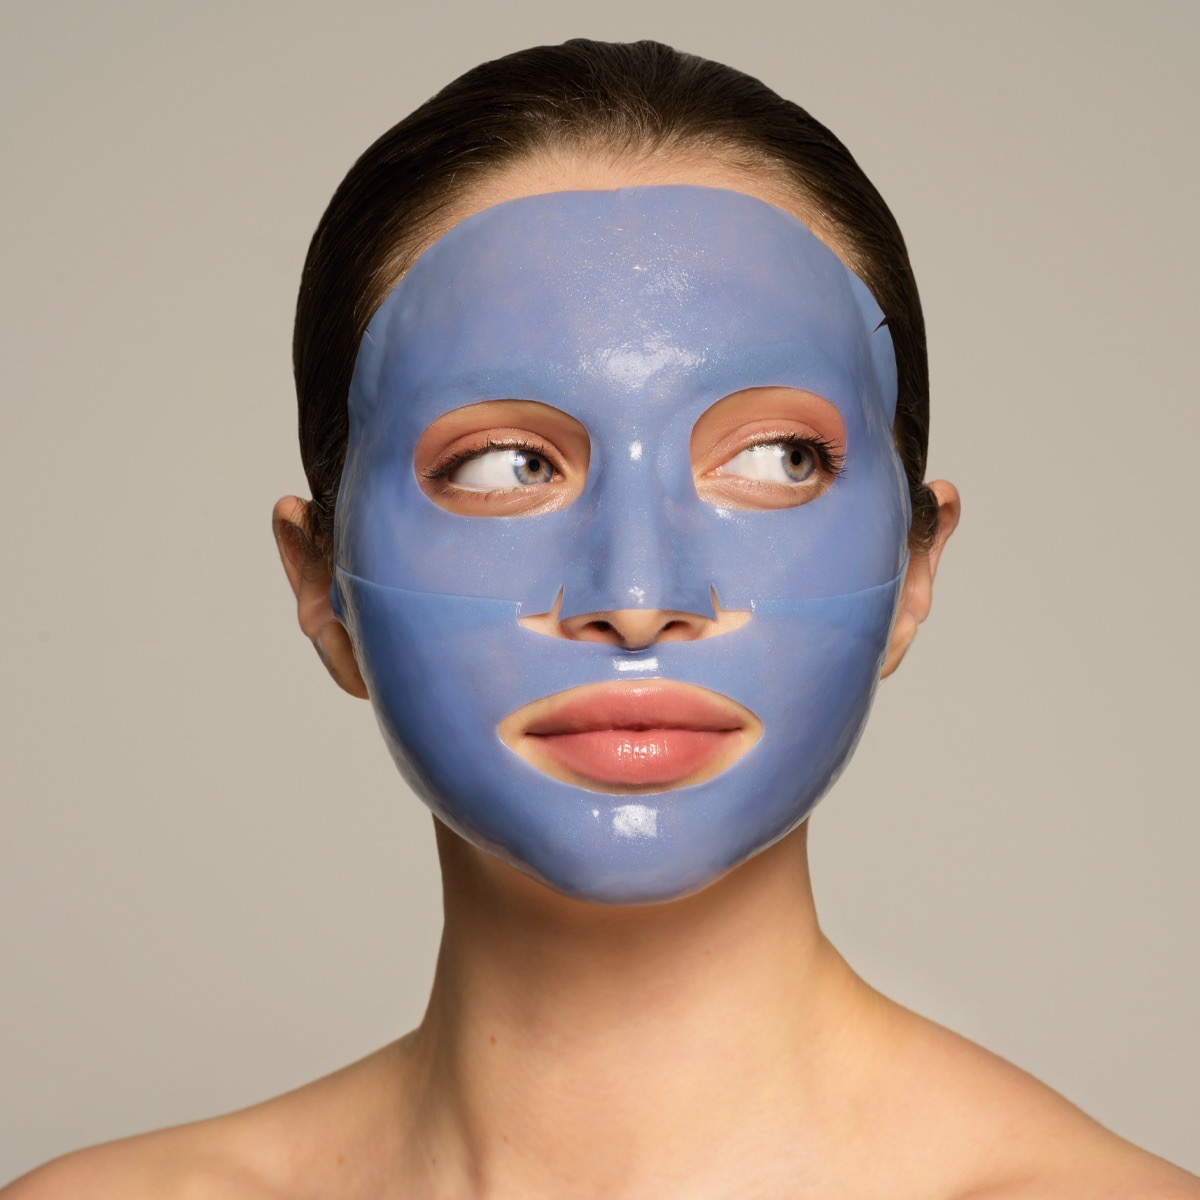 111skin On Twitter Infused With Alpha Glucosyl Hesperidin The Sub Zero De Puffing Energy Facial Mask Improves Circulation Combatting Dark Circles Tired Skin And Dull Complexion Skinscience Https T Co Uyv5gxd718